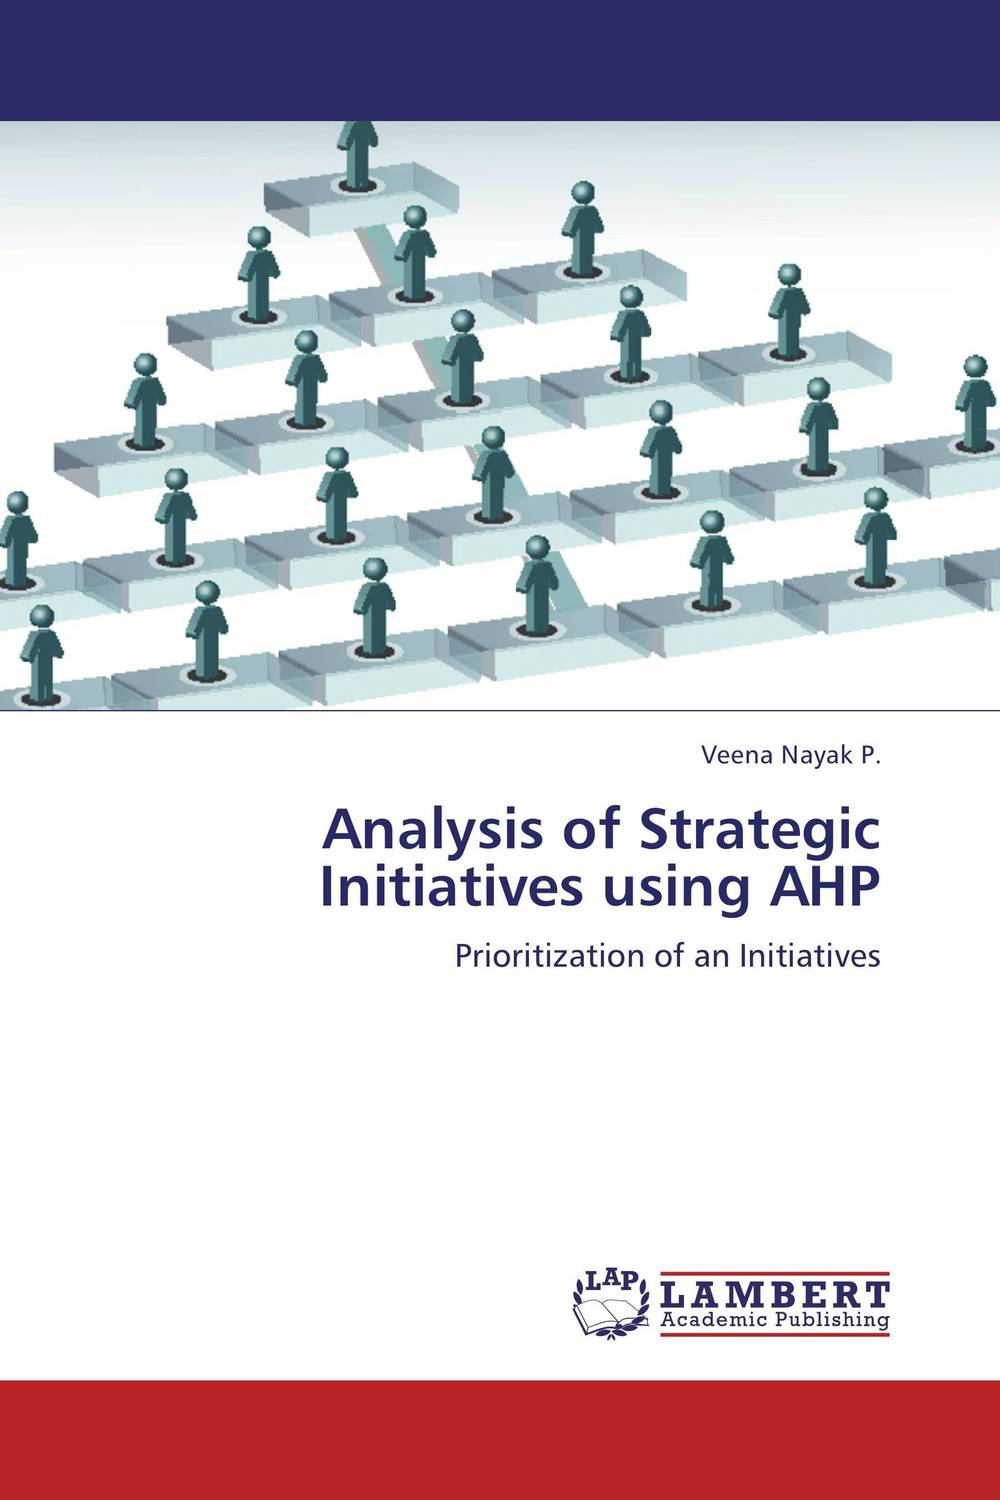 Analysis of Strategic Initiatives using AHP